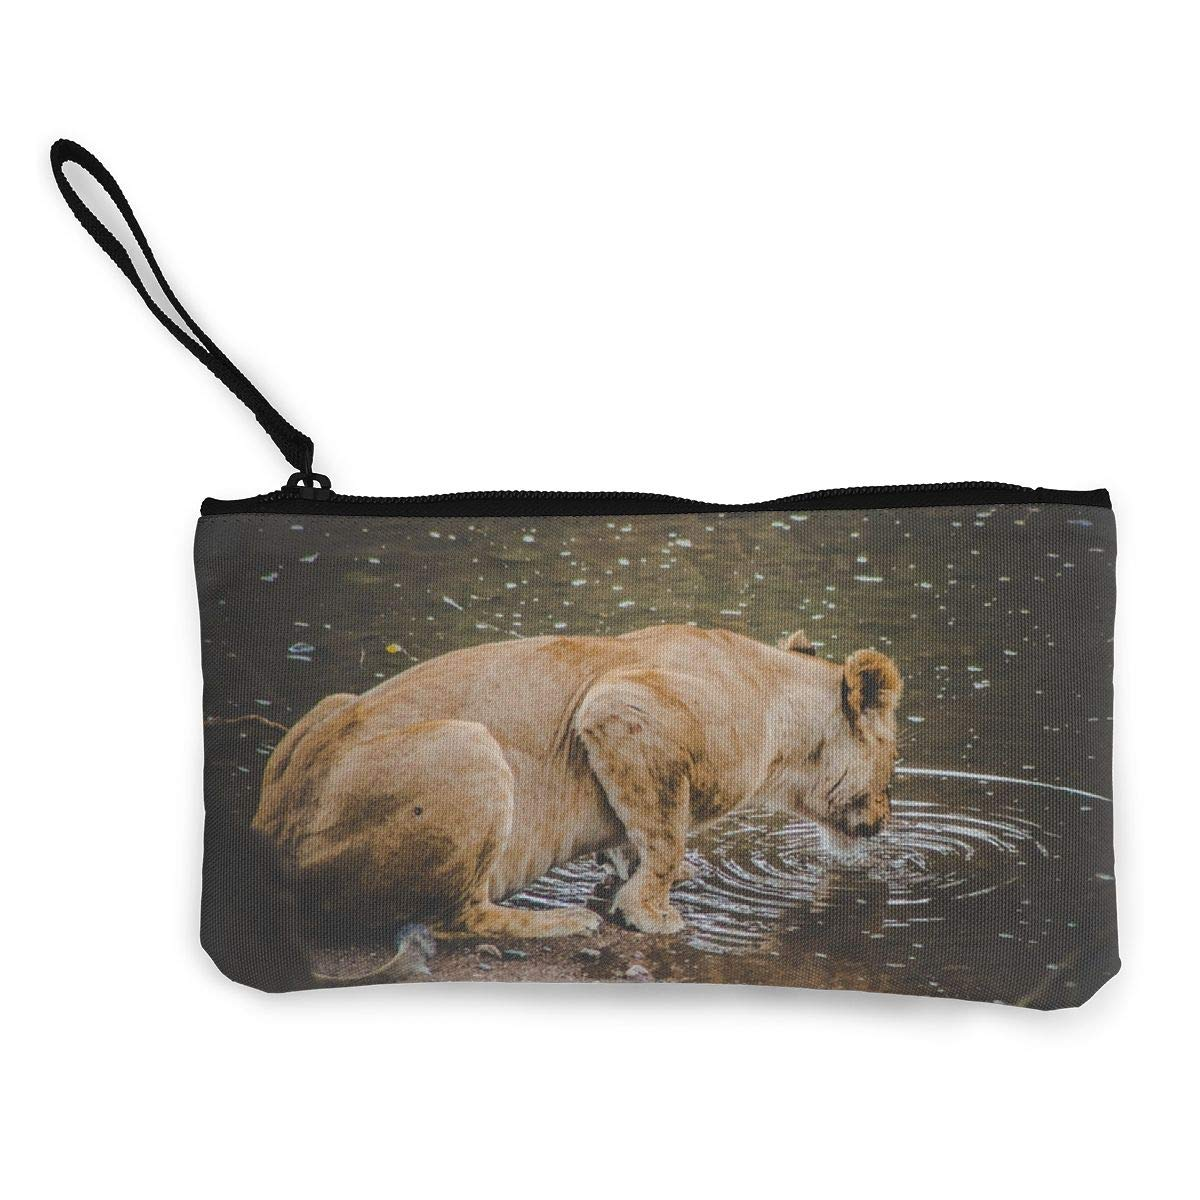 Yamini Lioness Lapping On Water Surface During Daytime Cute Looking Coin Purse Small and Exquisite Going Out to Carry Purse